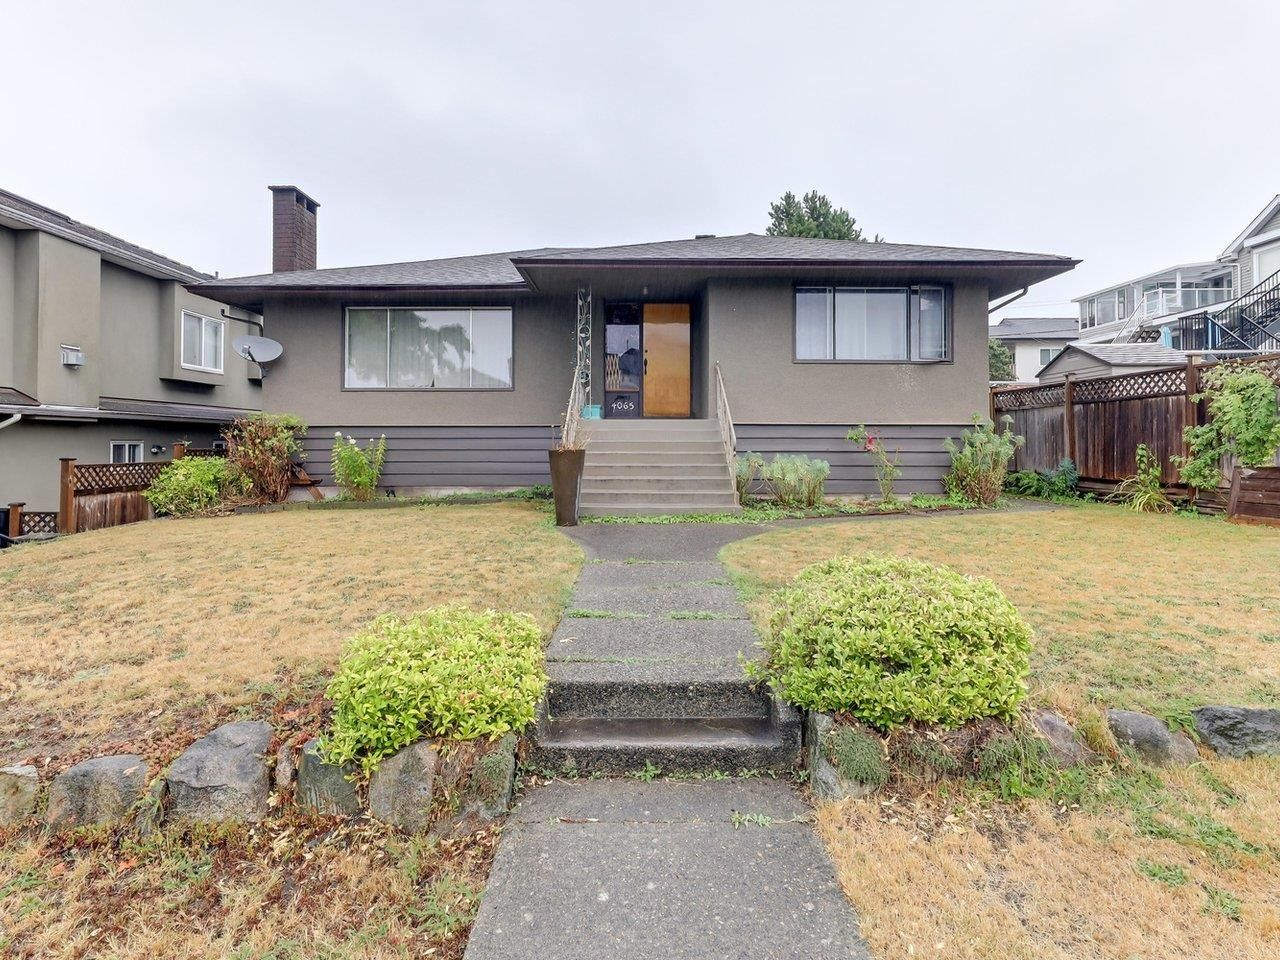 Main Photo: 4065 PARKER Street in Burnaby: Willingdon Heights House for sale (Burnaby North)  : MLS®# R2610580